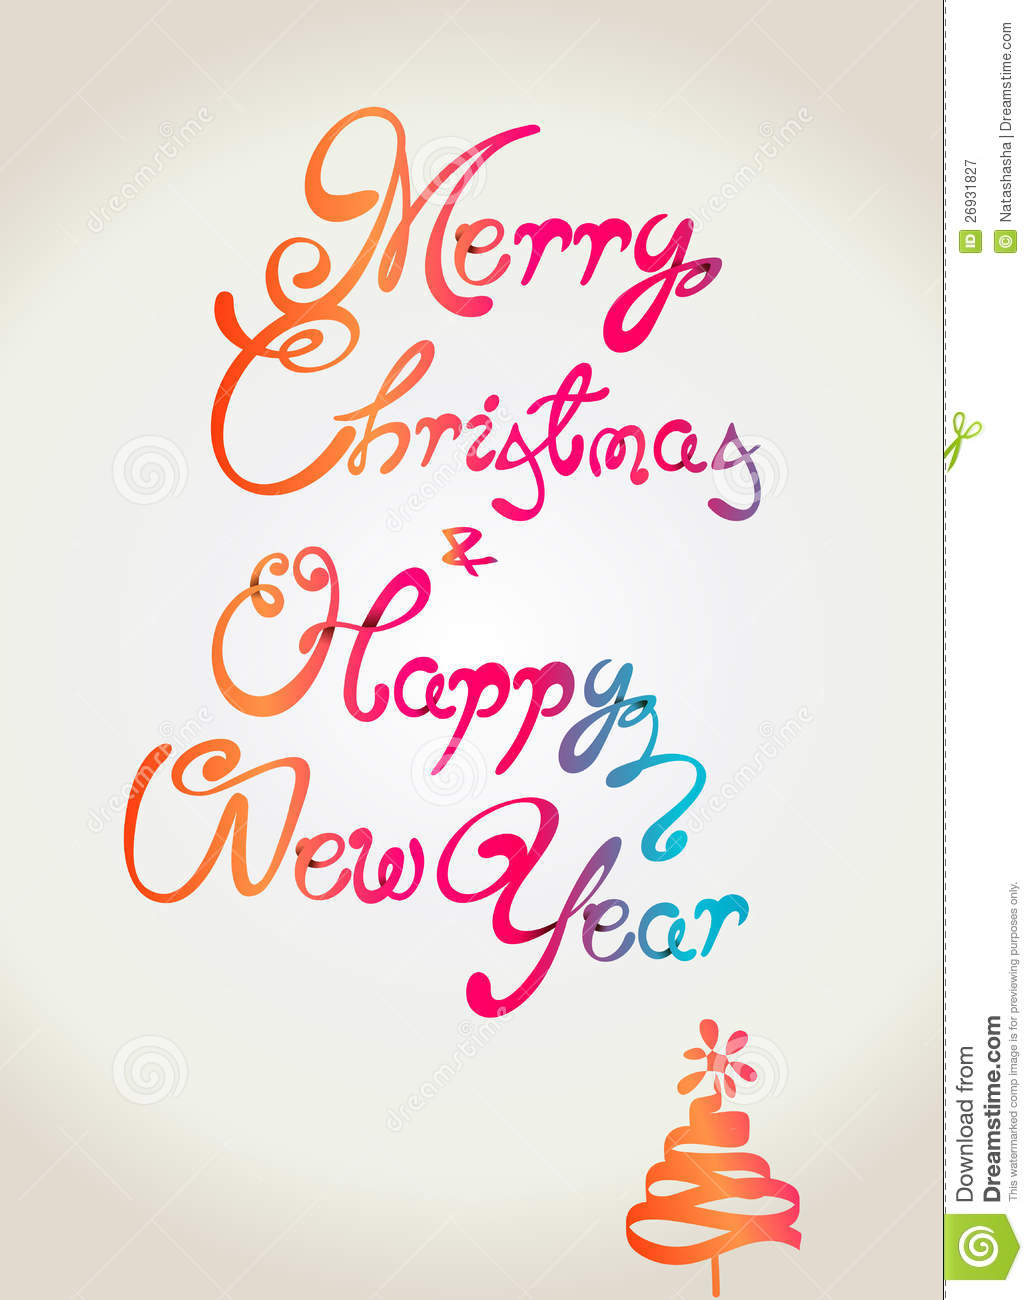 ... Christmas And Happy New Year Clip Art Merry christmas and happy new